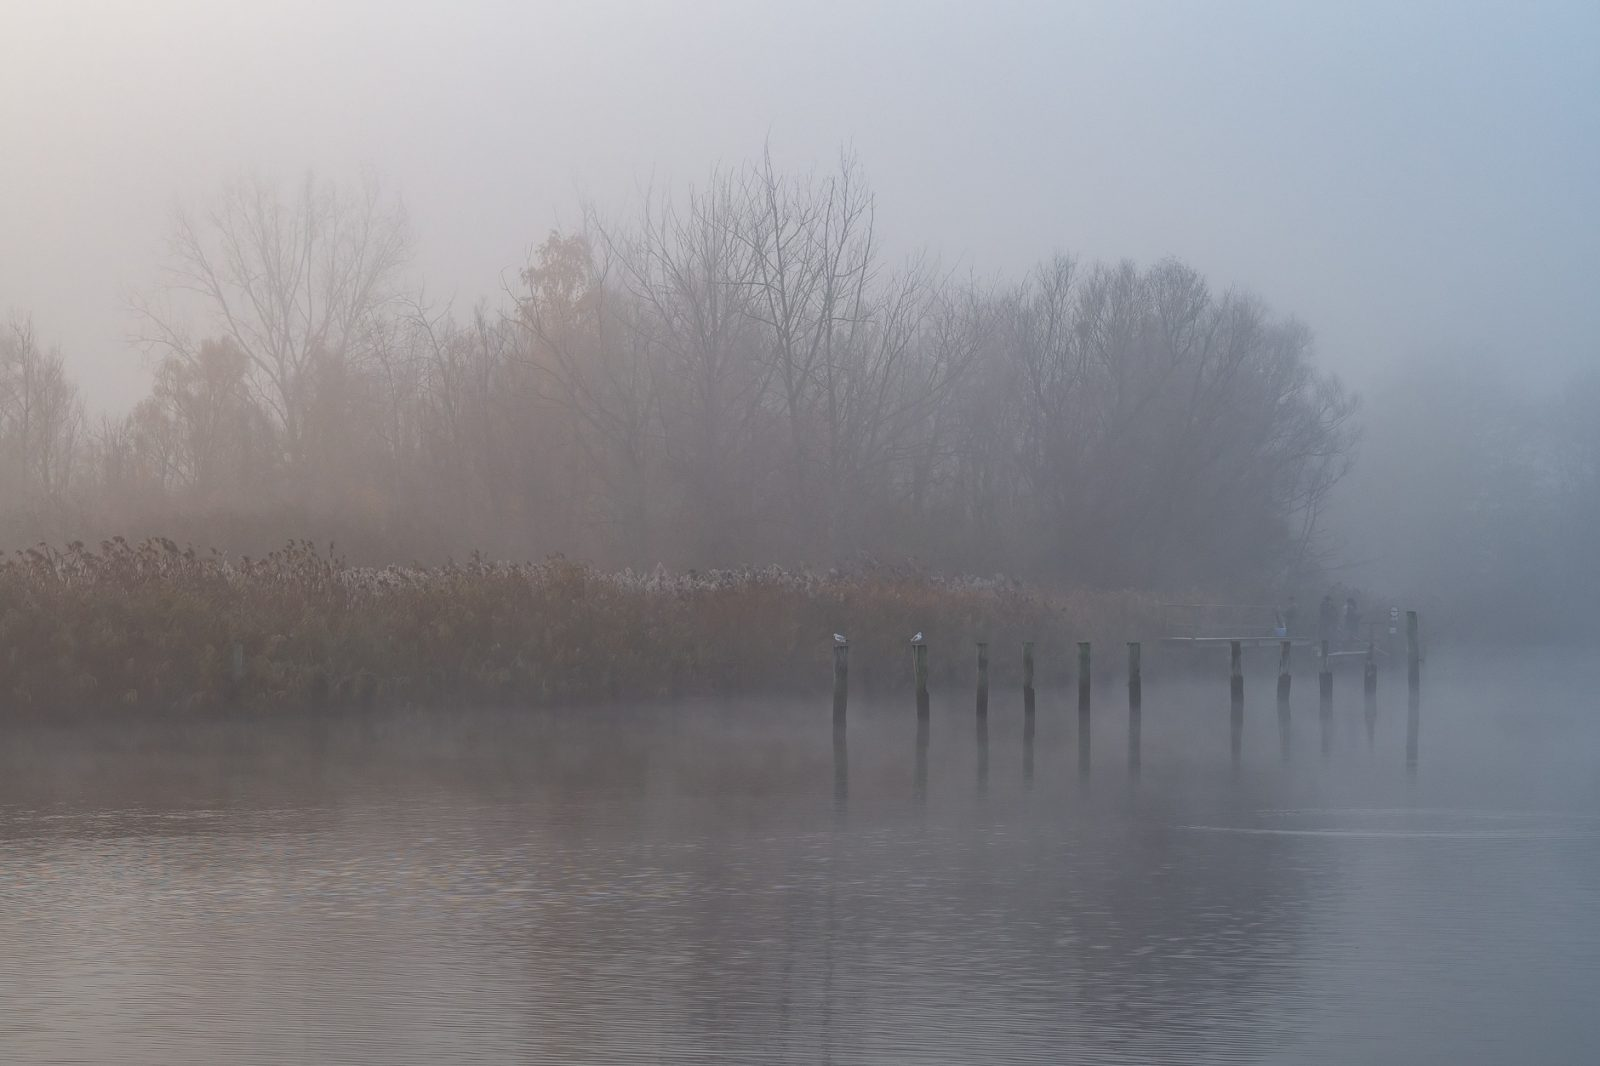 Heavy fog in the morning at Rostock an der Warnow